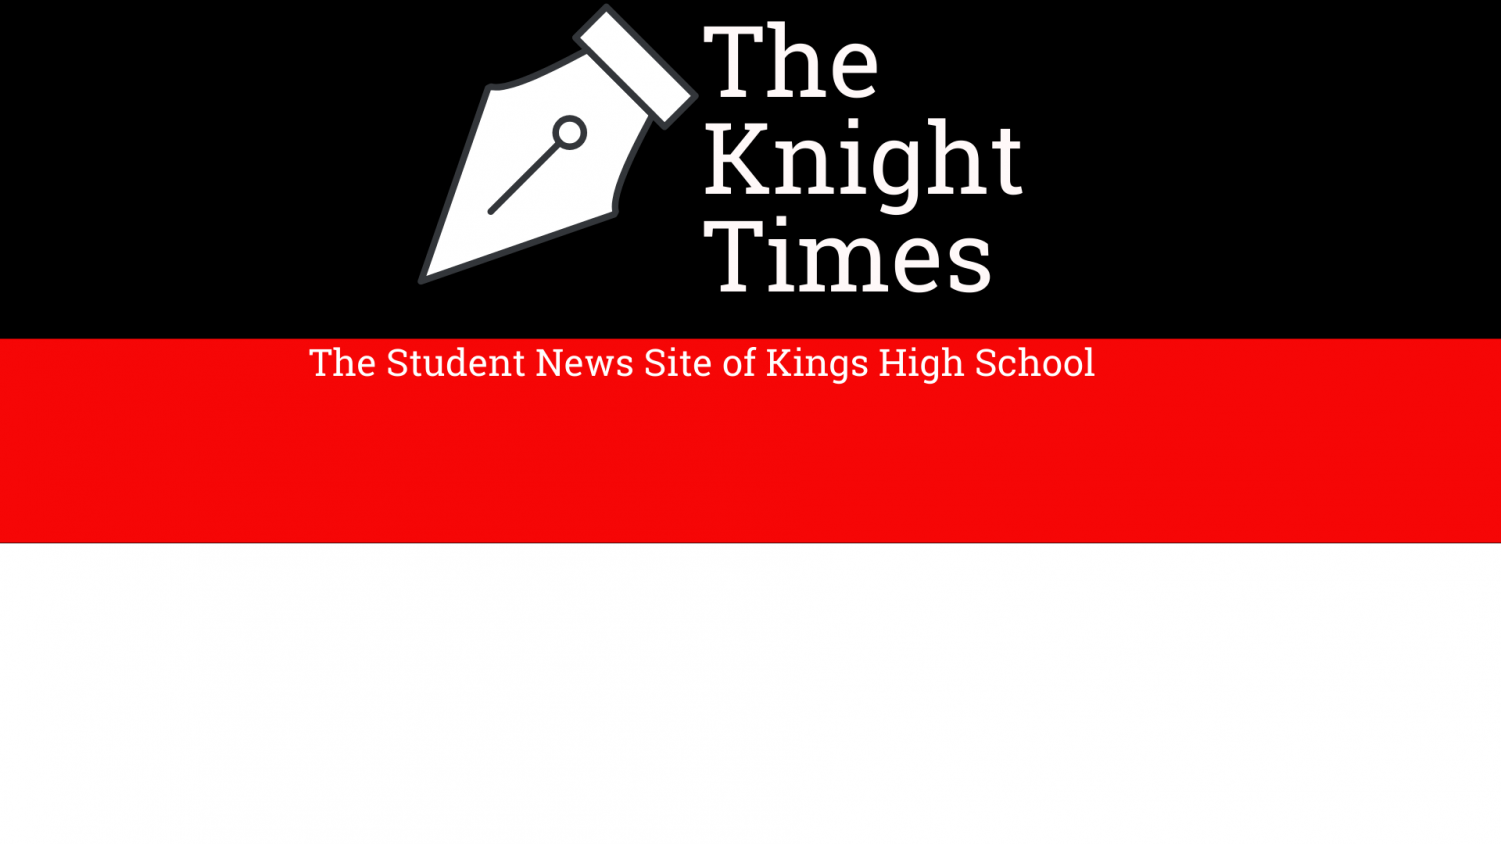 The Student News Site of Kings High School